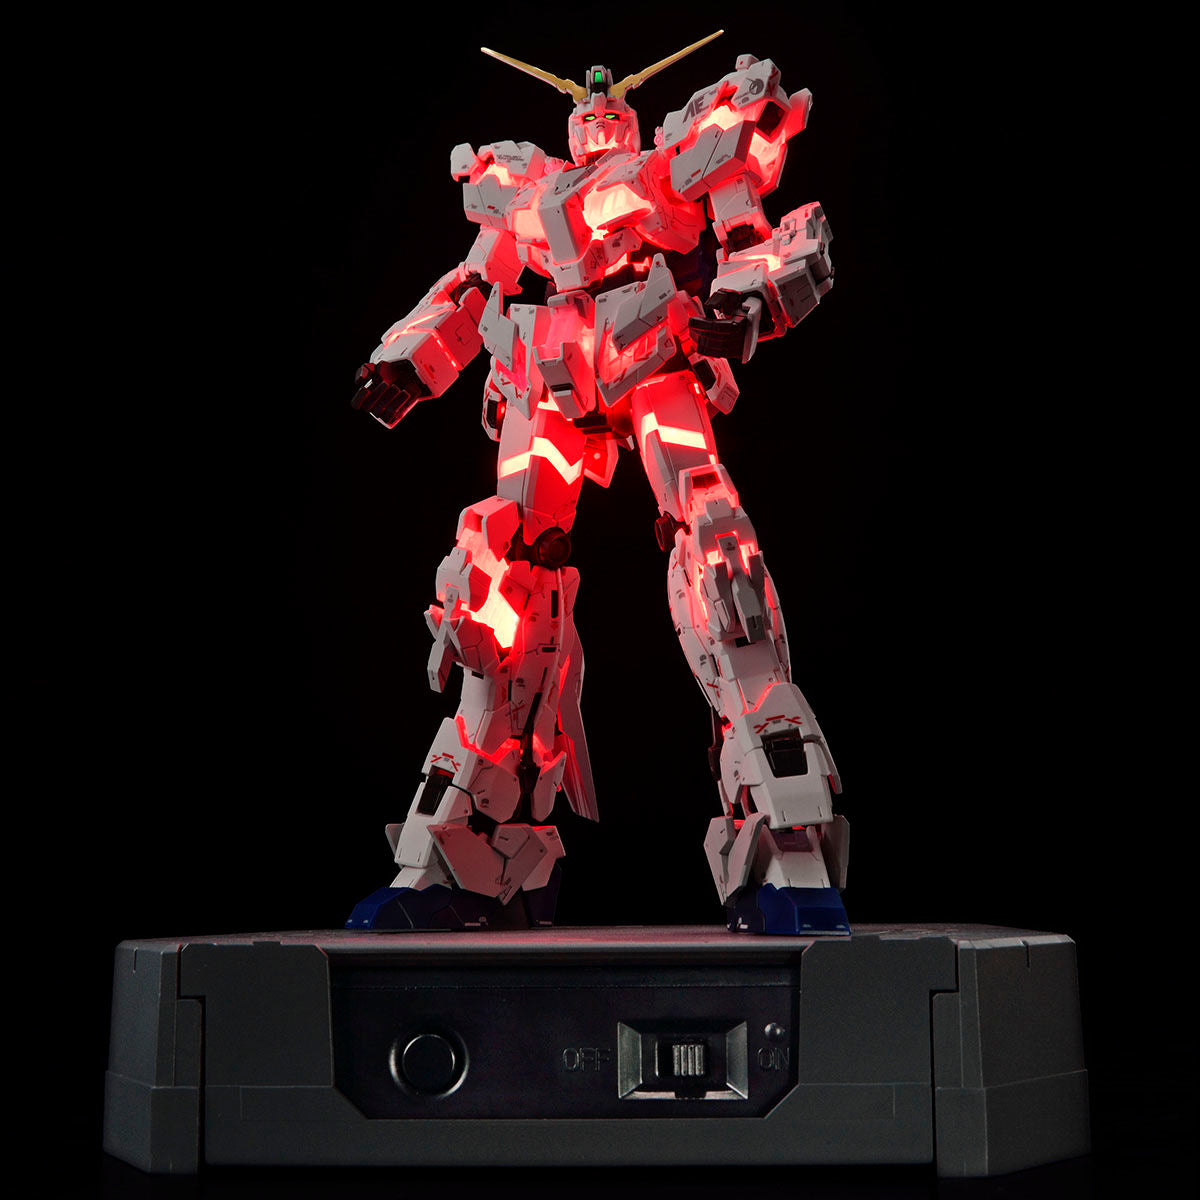 RG 1/144 Gundam Base Limited RX-0 Unicorn Gundam (Destroy mode) Ver. TWC (LIGHTING MODEL)